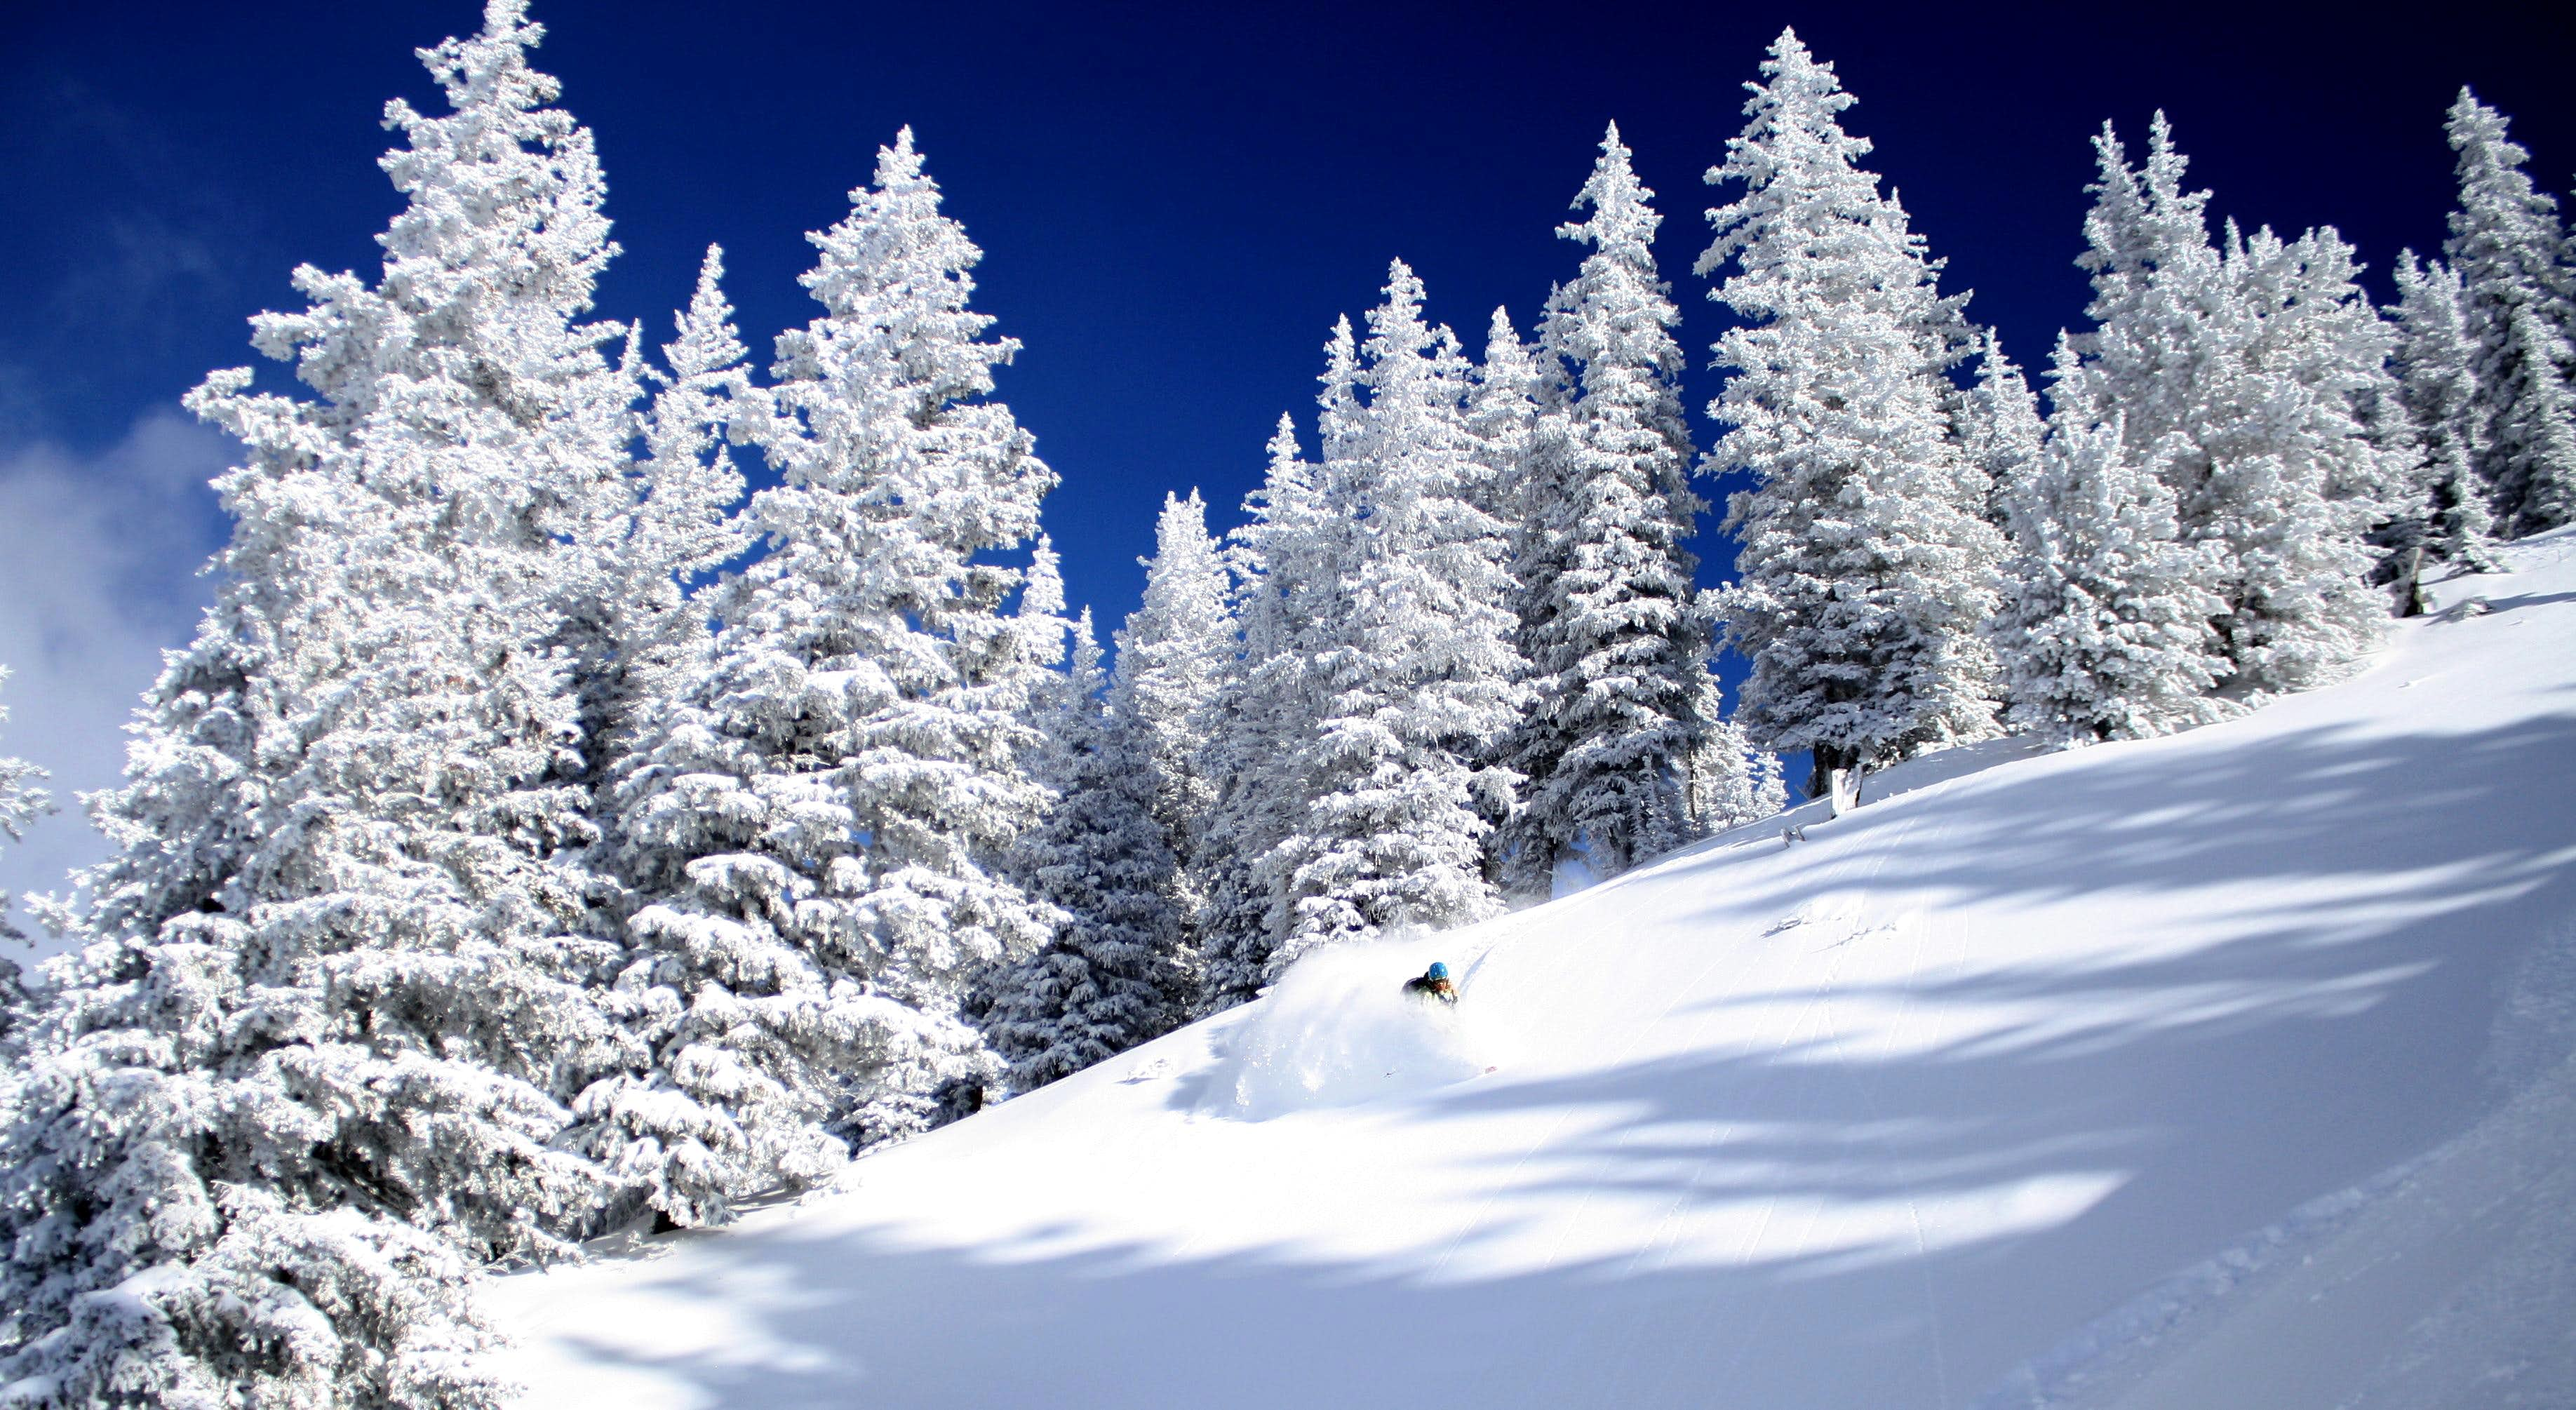 My Other Backcountry Skiing Photography